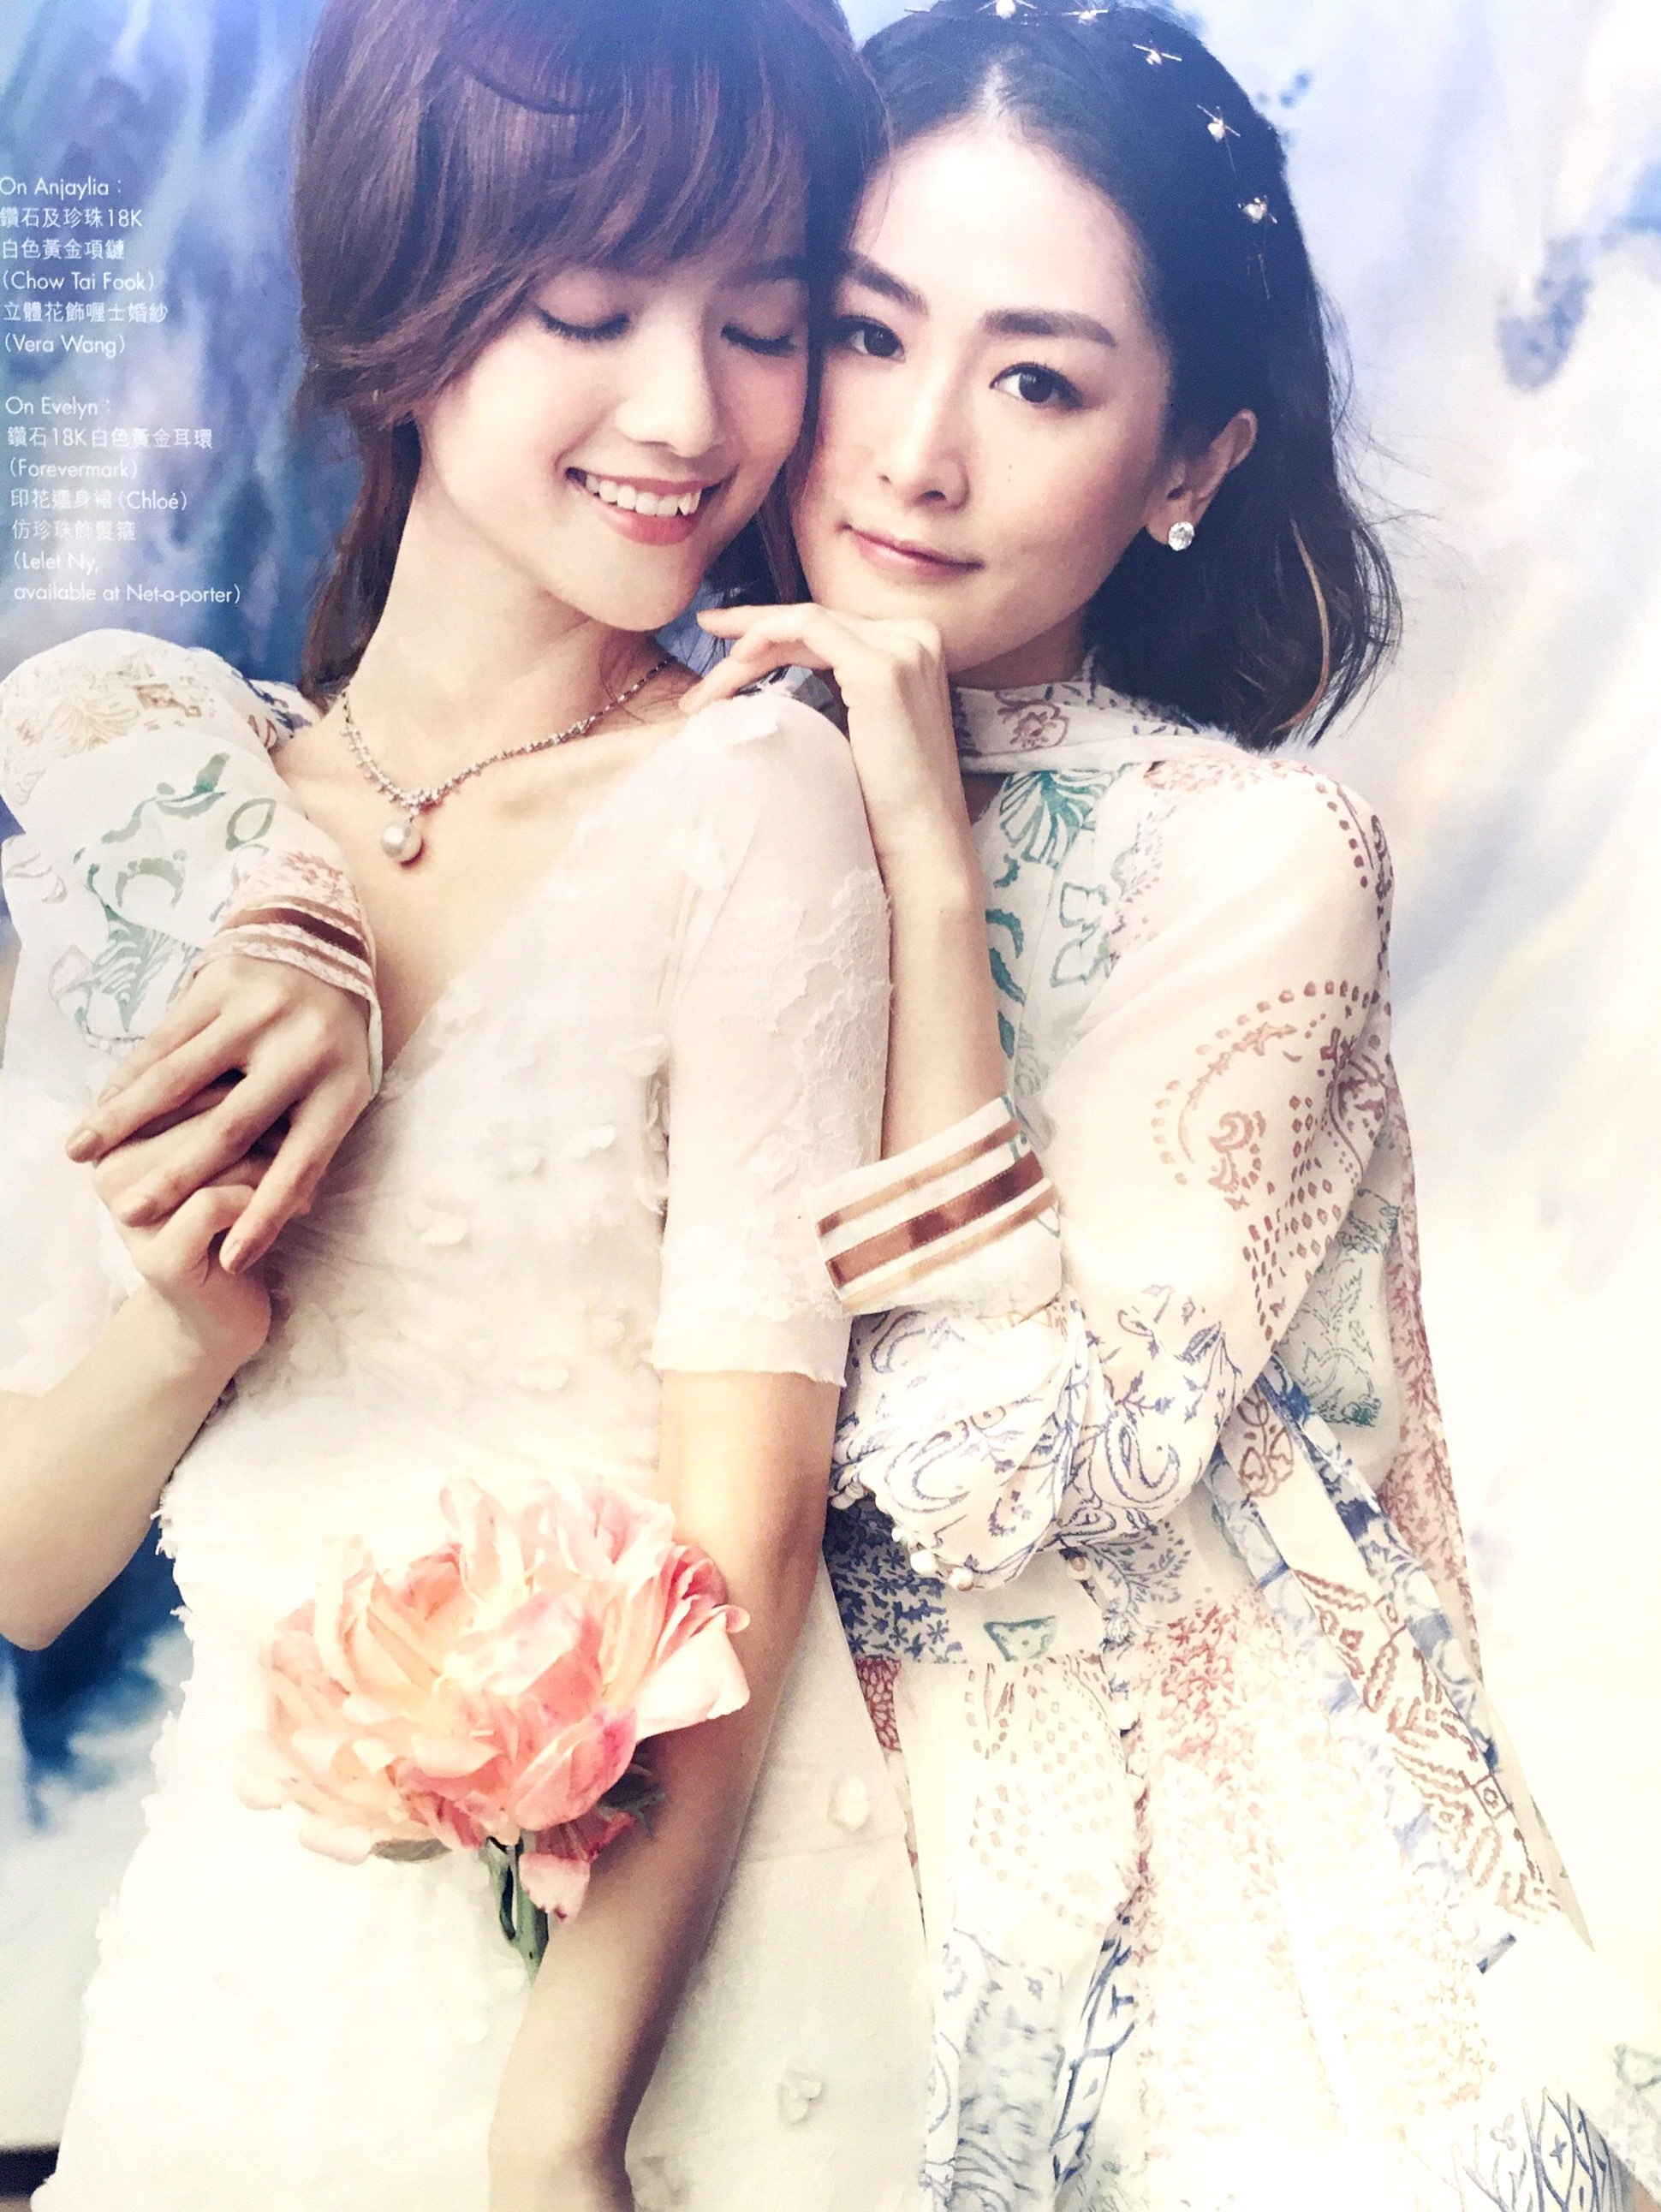 vera-wang-anjaylia-pre-wedding-elle-bride-evelyn-choi